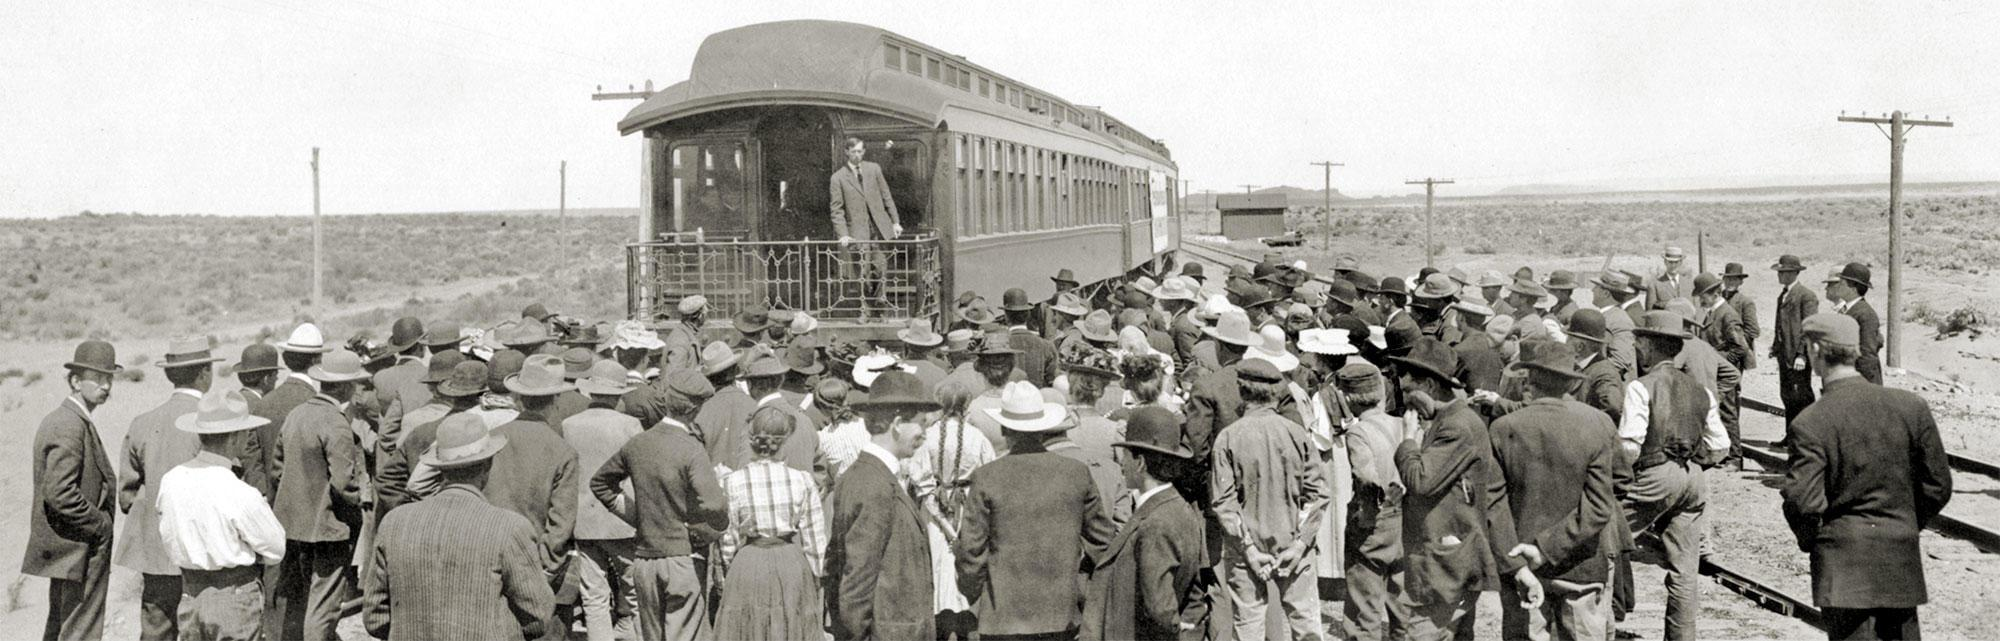 More than eighty people gather at the back of a train to listen to a farming demonstration lesson.